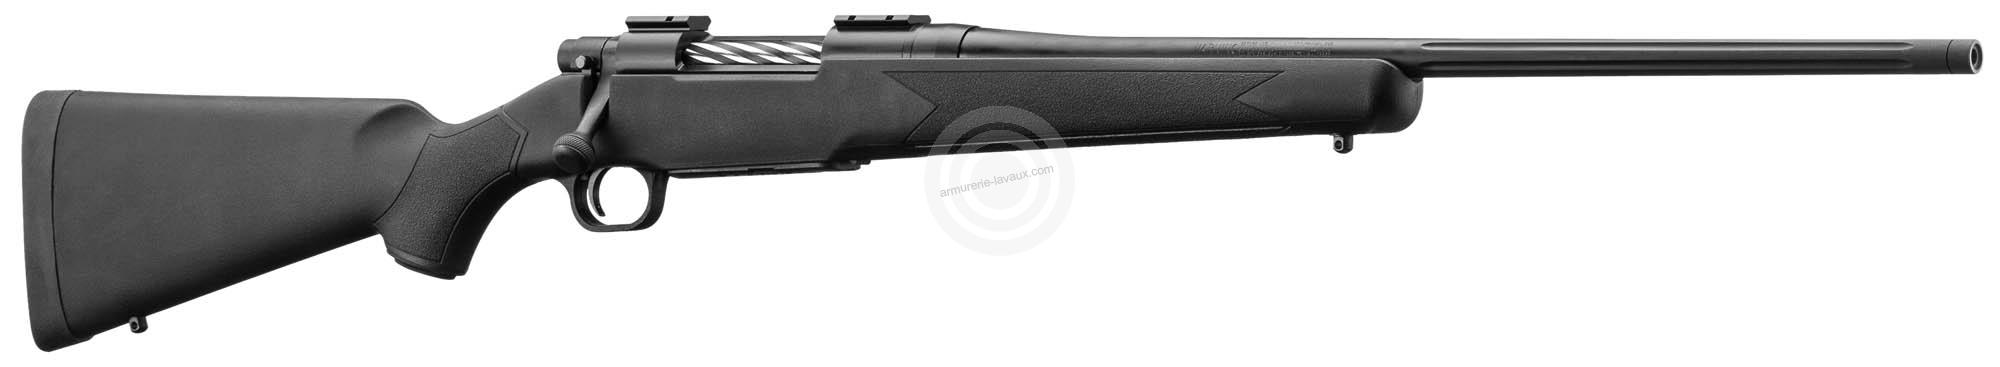 Carabine MOSSBERG PATRIOT Synthétique Fileté cal.30-06 Sprg